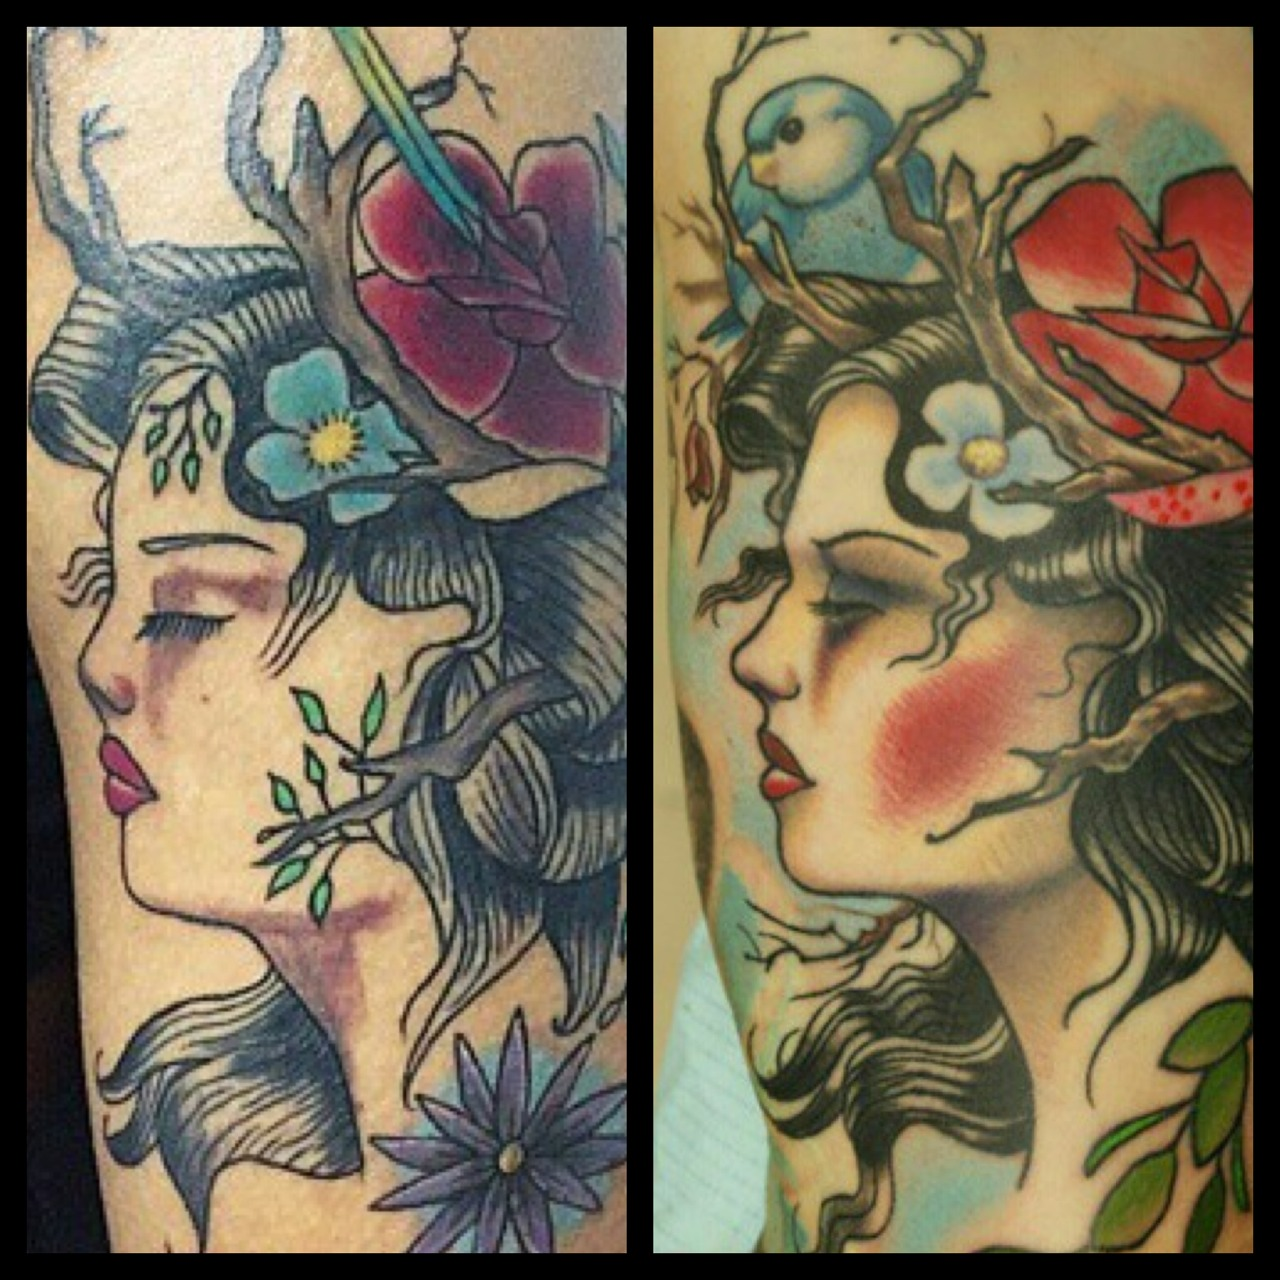 The first picture is a copy of a tattoo that I designed and tattooed 4 years ago. These are the kind of things that make me hesitate sharing custom tattoo pictures on the web. This person is stealing from my client who paid for custom artwork. Cheers.